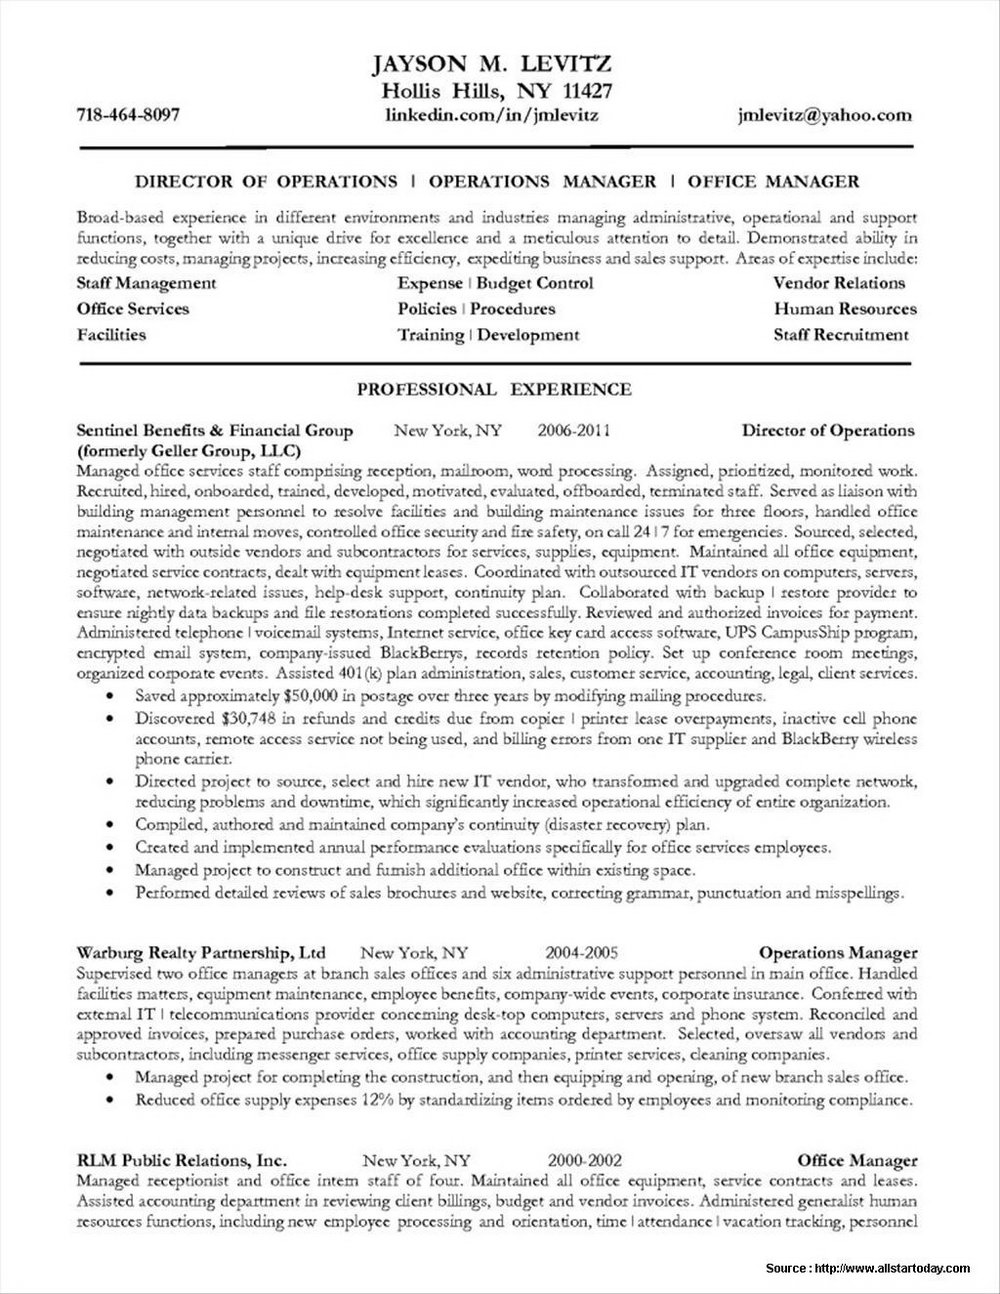 Professional Resume Writing Services In India